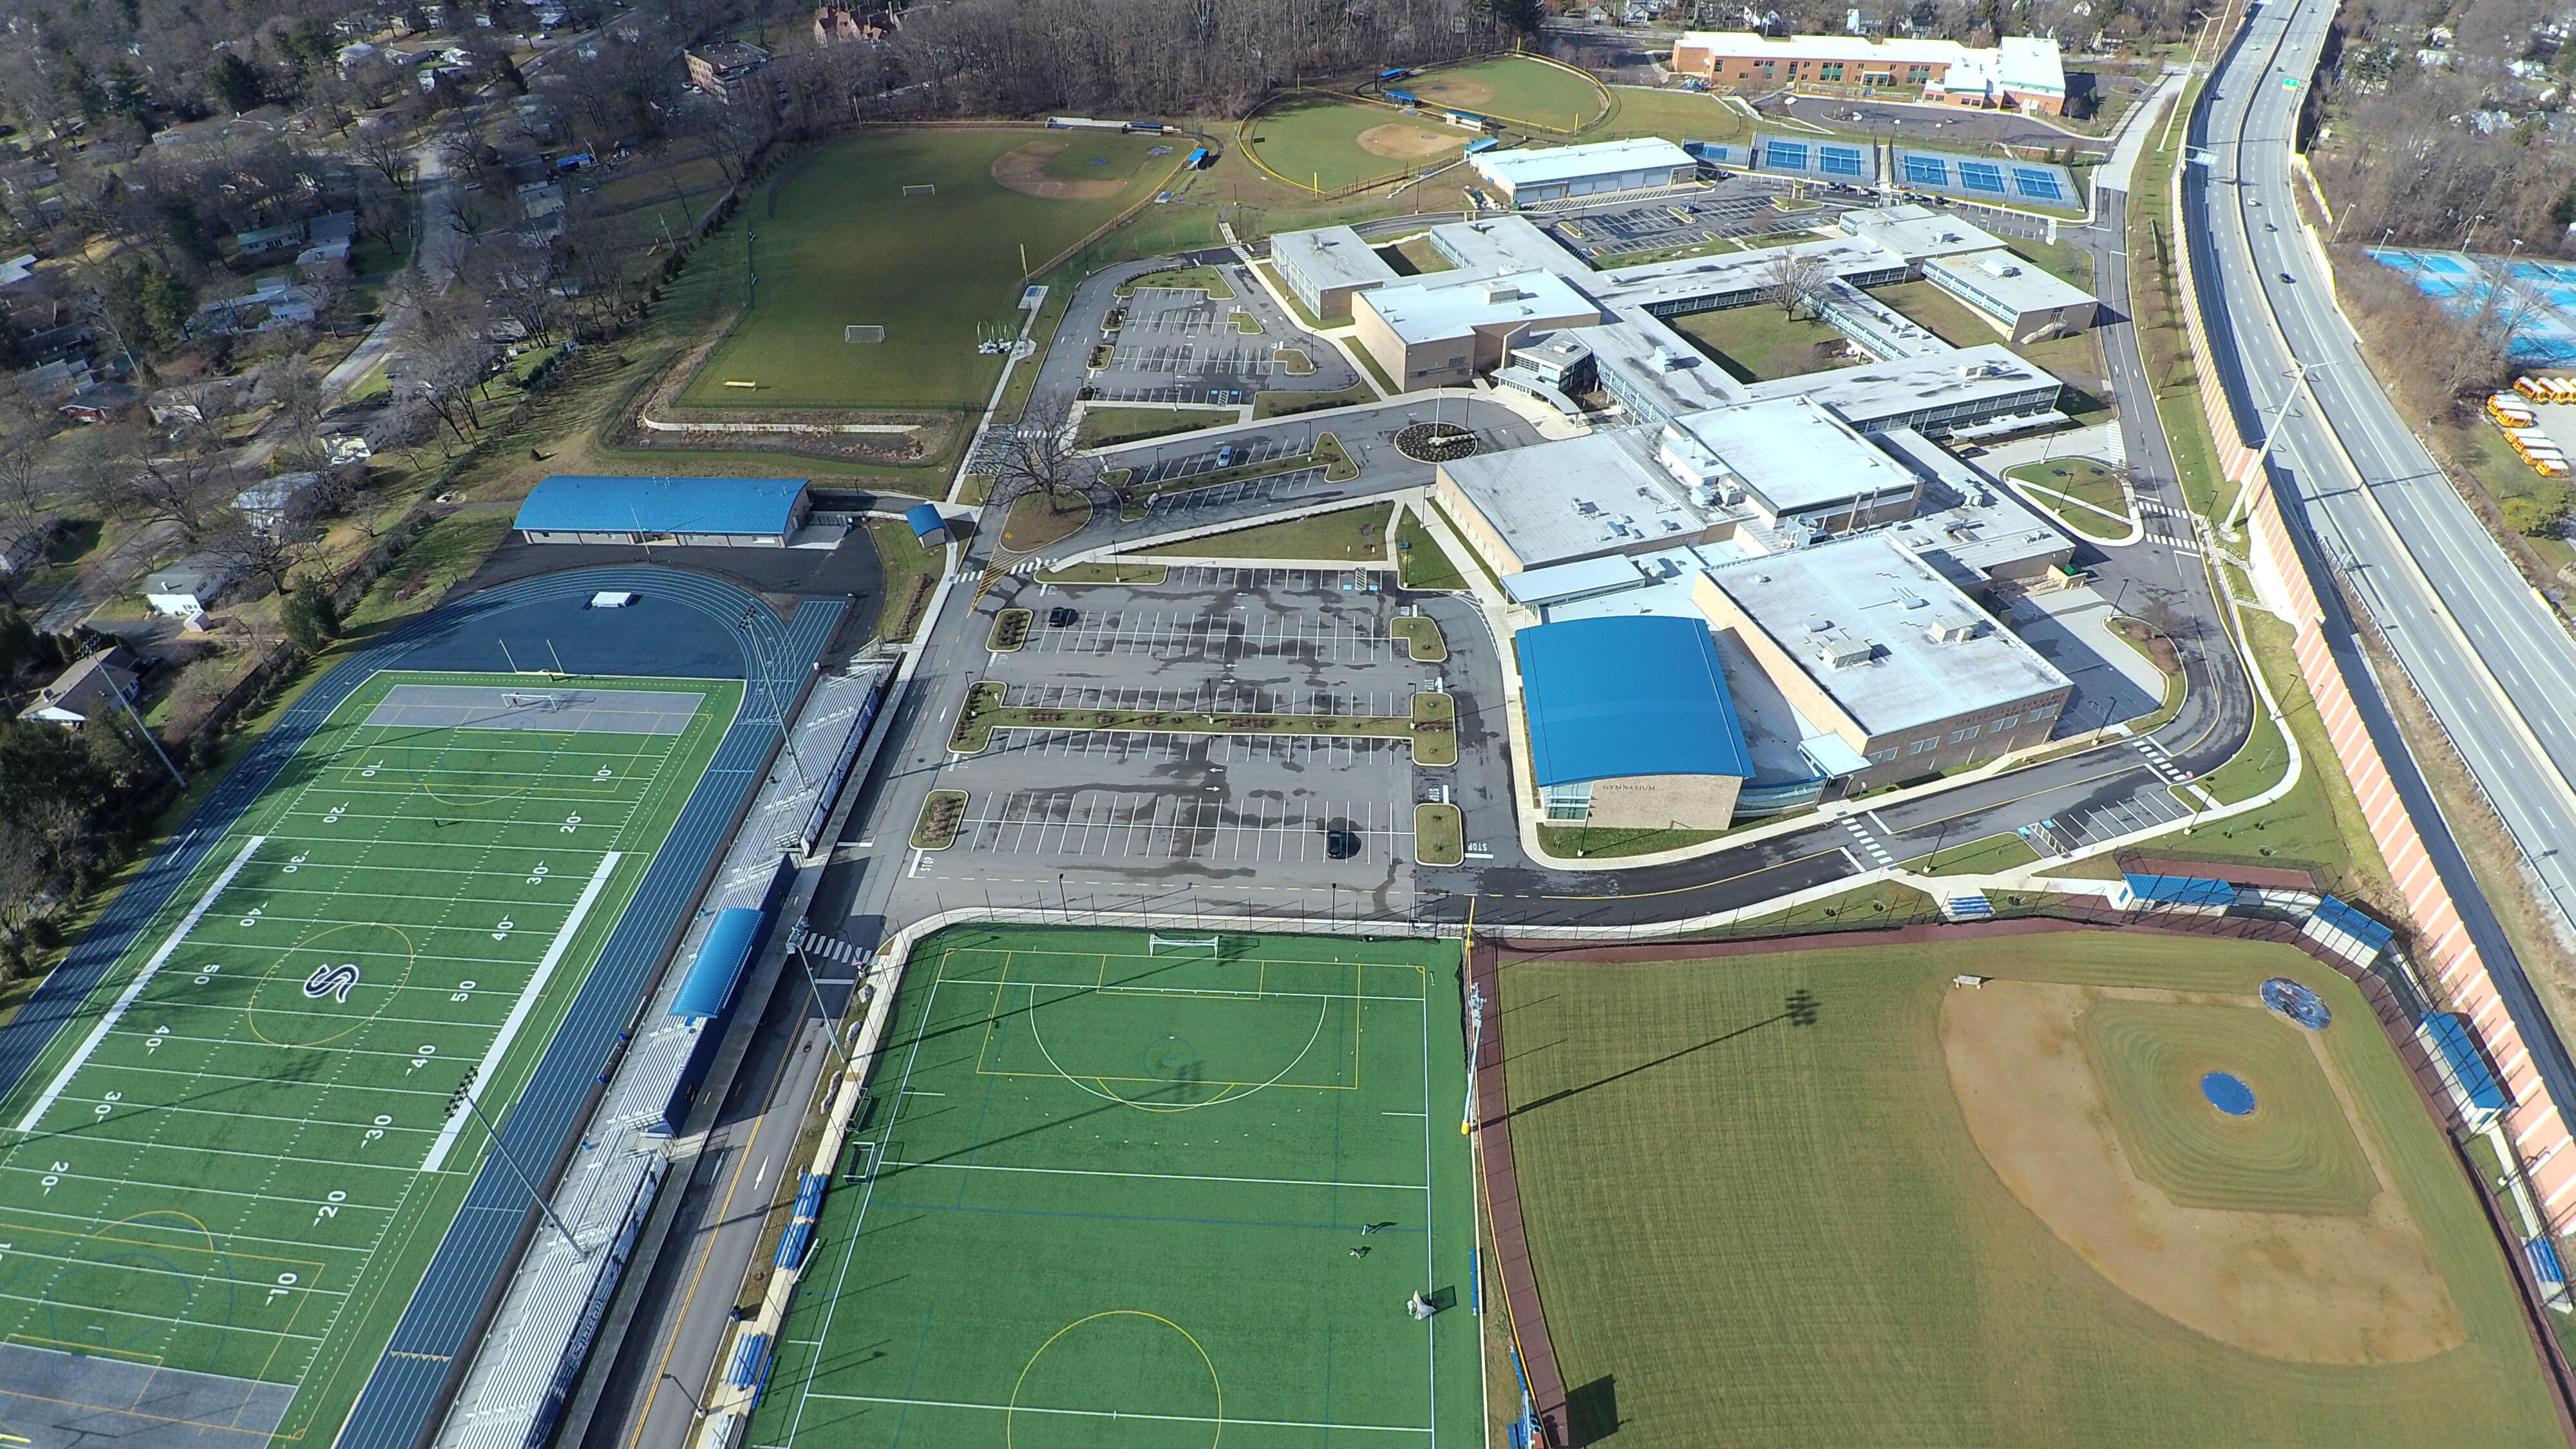 Drone photo of HS grounds